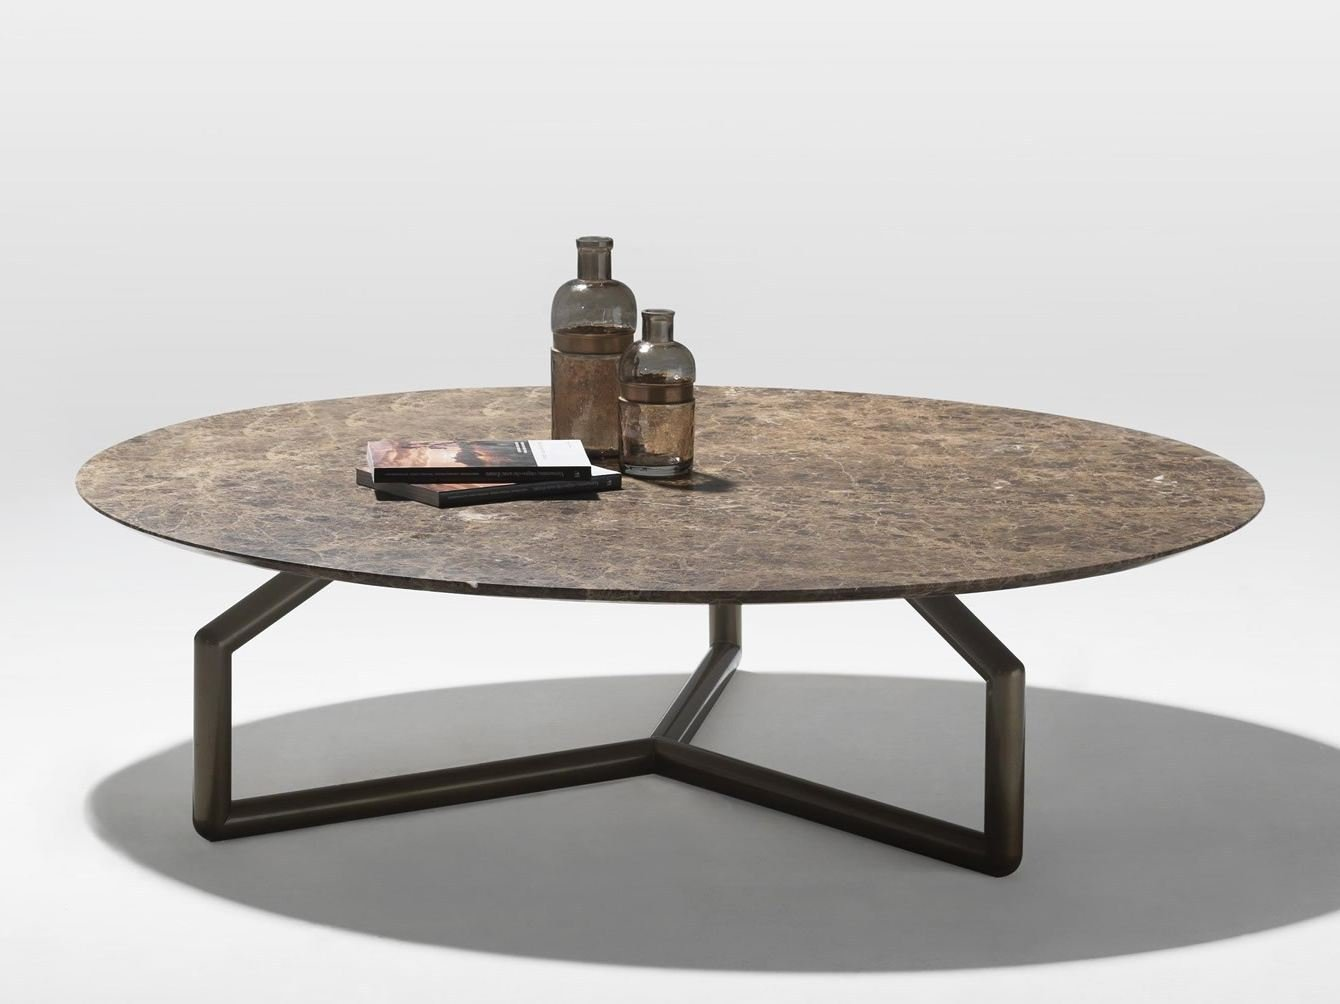 Low Round Marble Coffee Table Ginger By Esedra Design Studio Memo